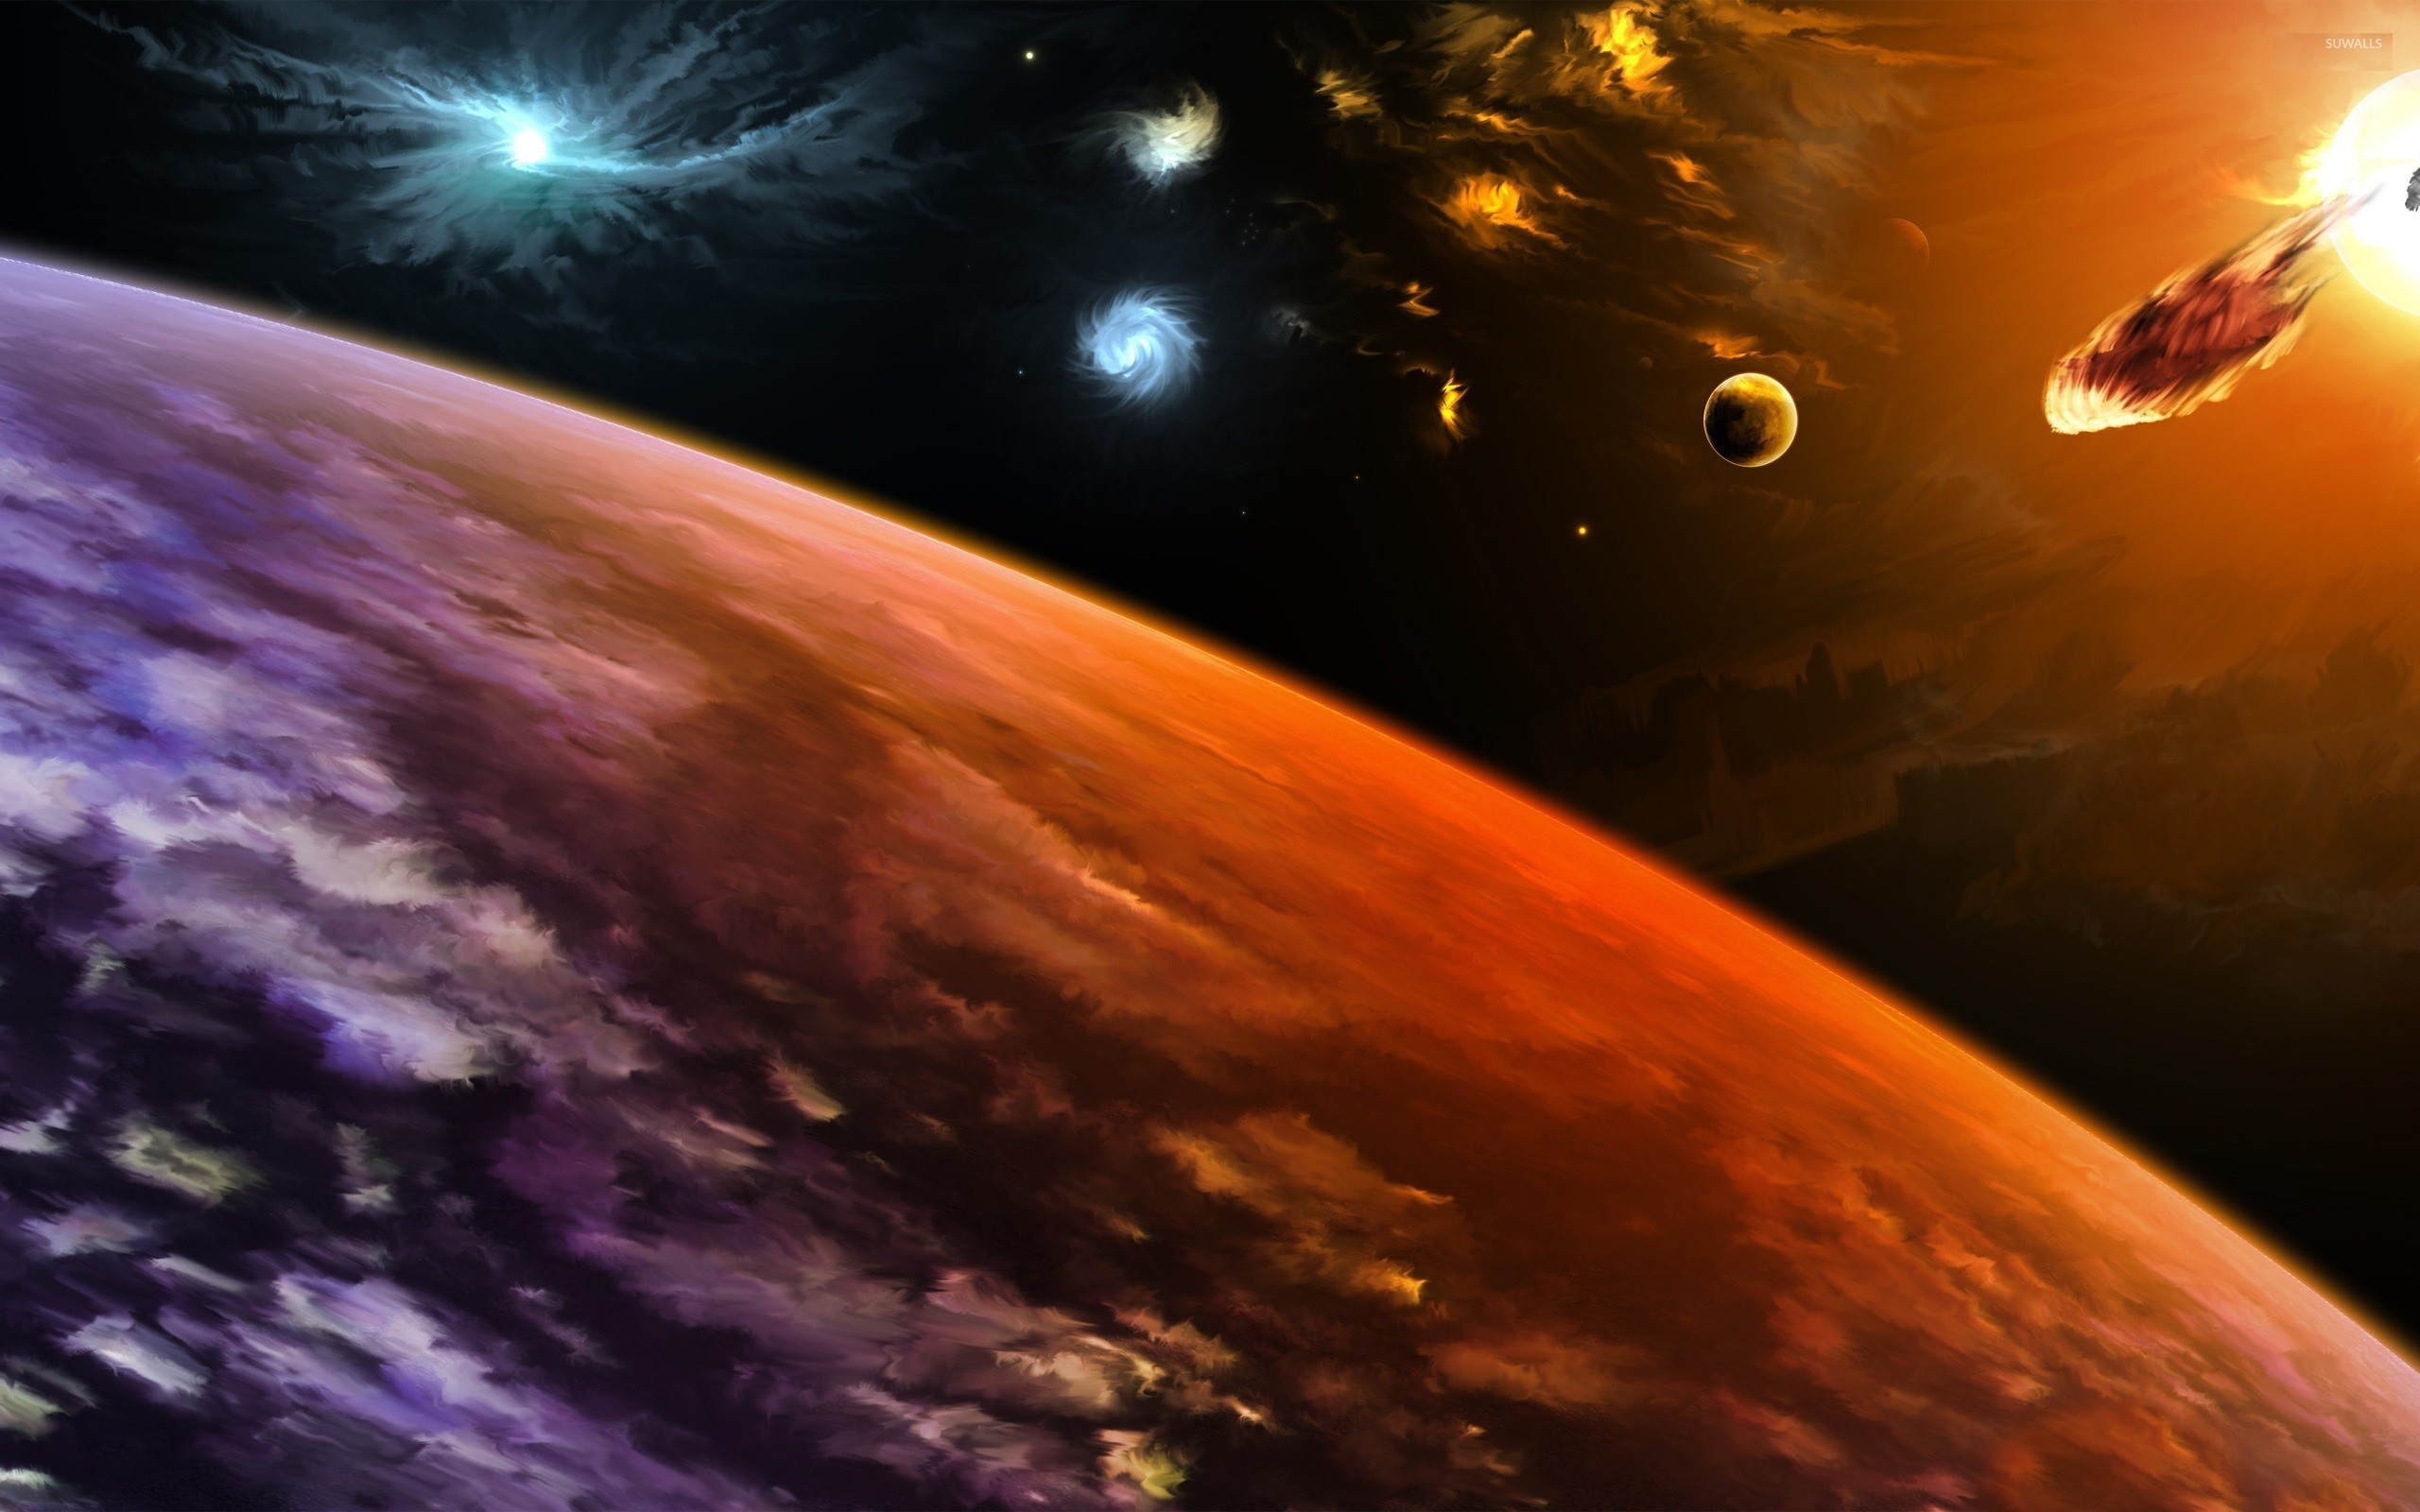 Planets hit by asteroids [3] wallpaper